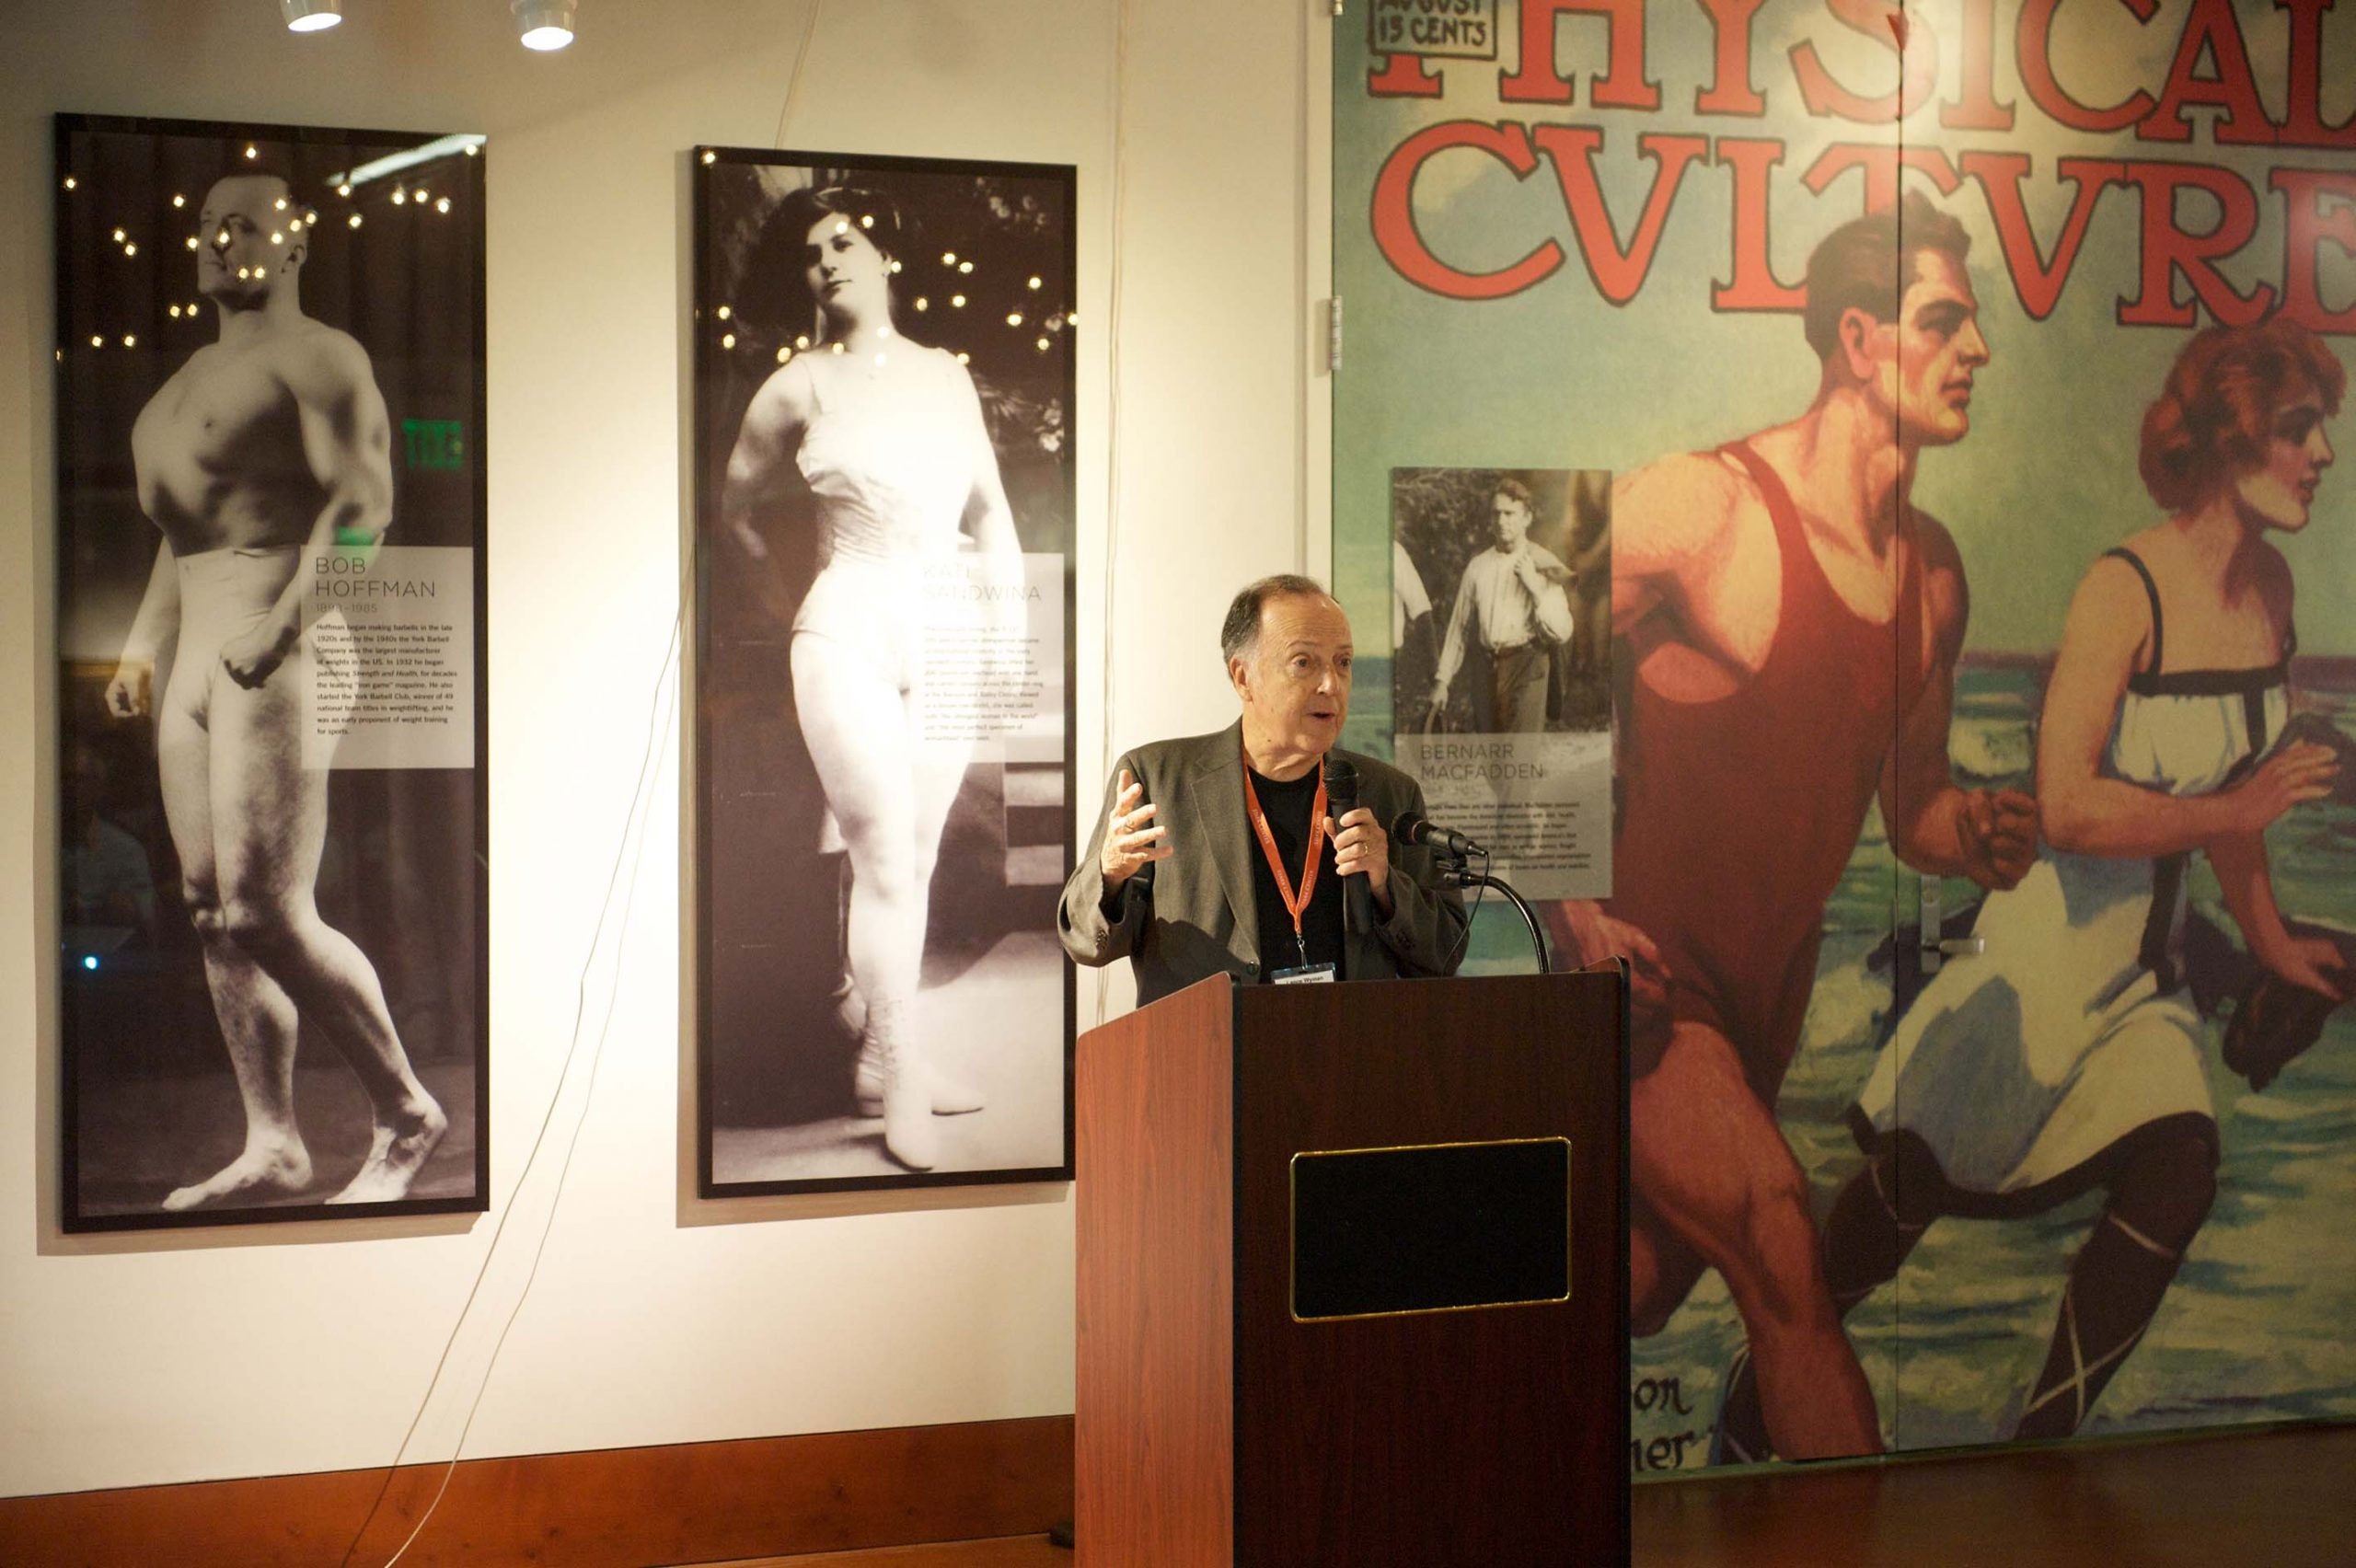 A man speaking in front of the Wall of Icons, in the man lobby, at the 1968 U.S. Olympic Team 2012 Reunion.